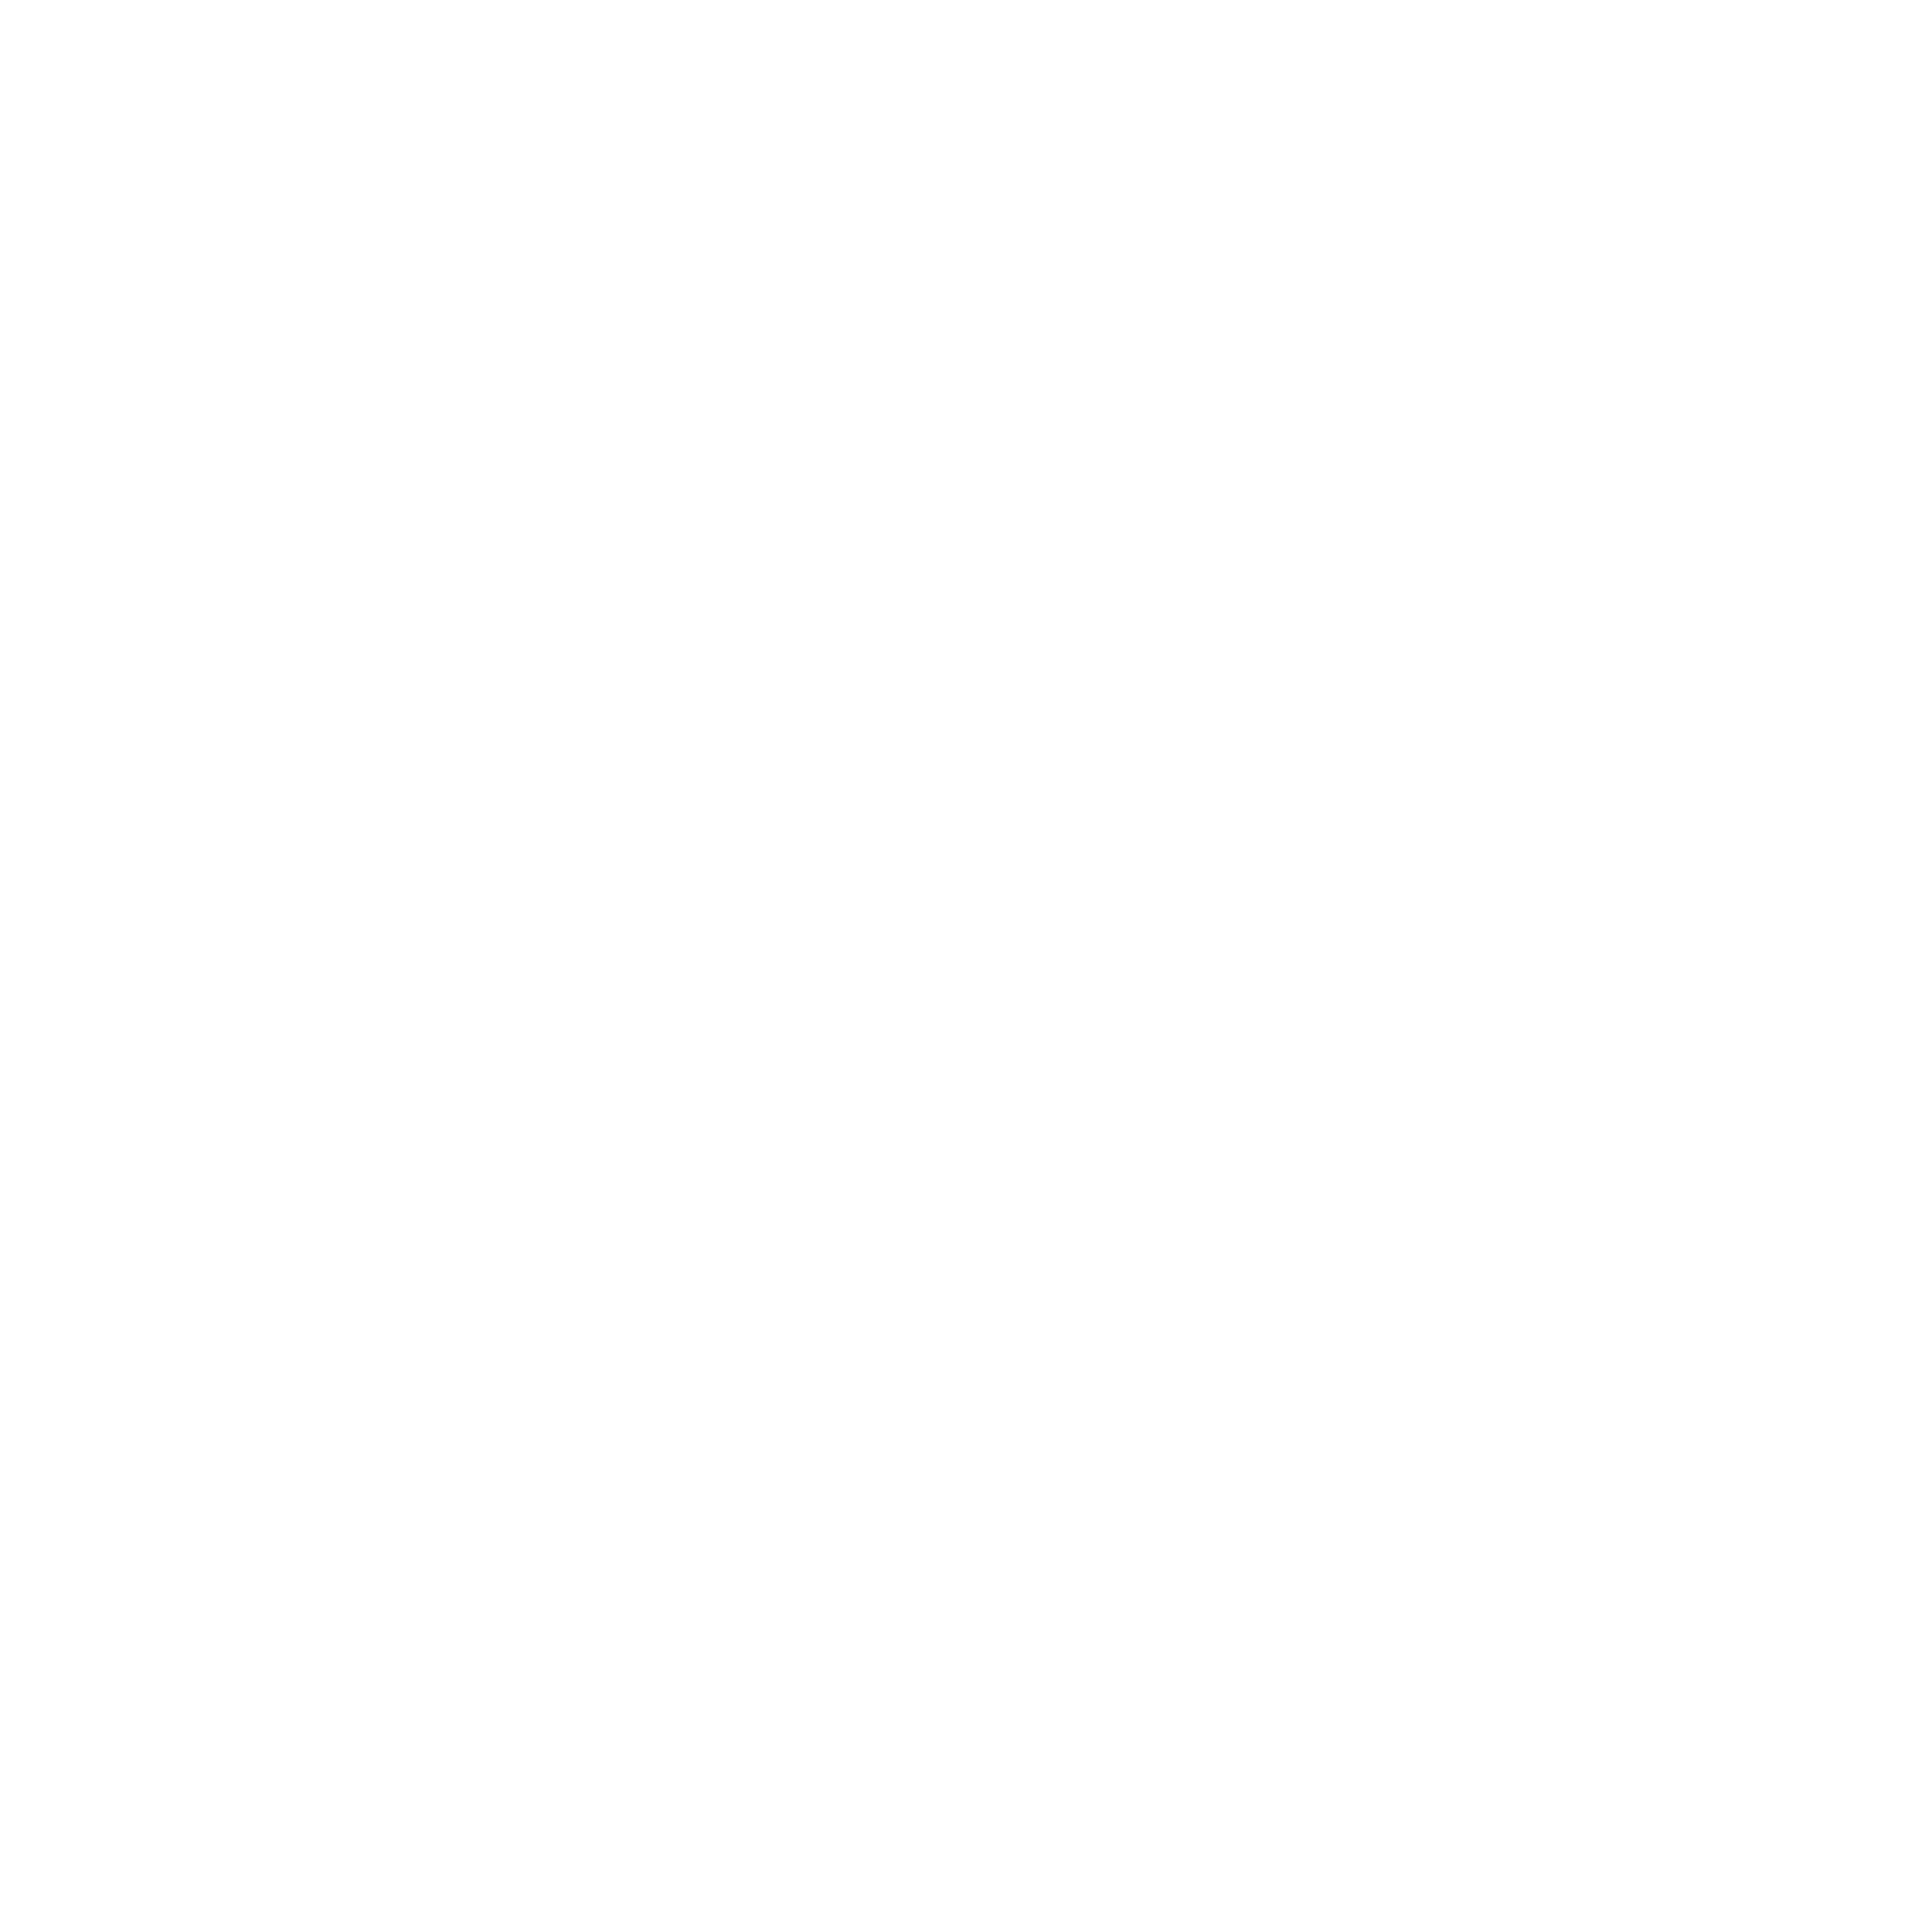 FEVO enables social commerce to happen on your brand. Imagine the power of Instagram, Snapchat and TikTok across all your domains without having to write a single line of code.